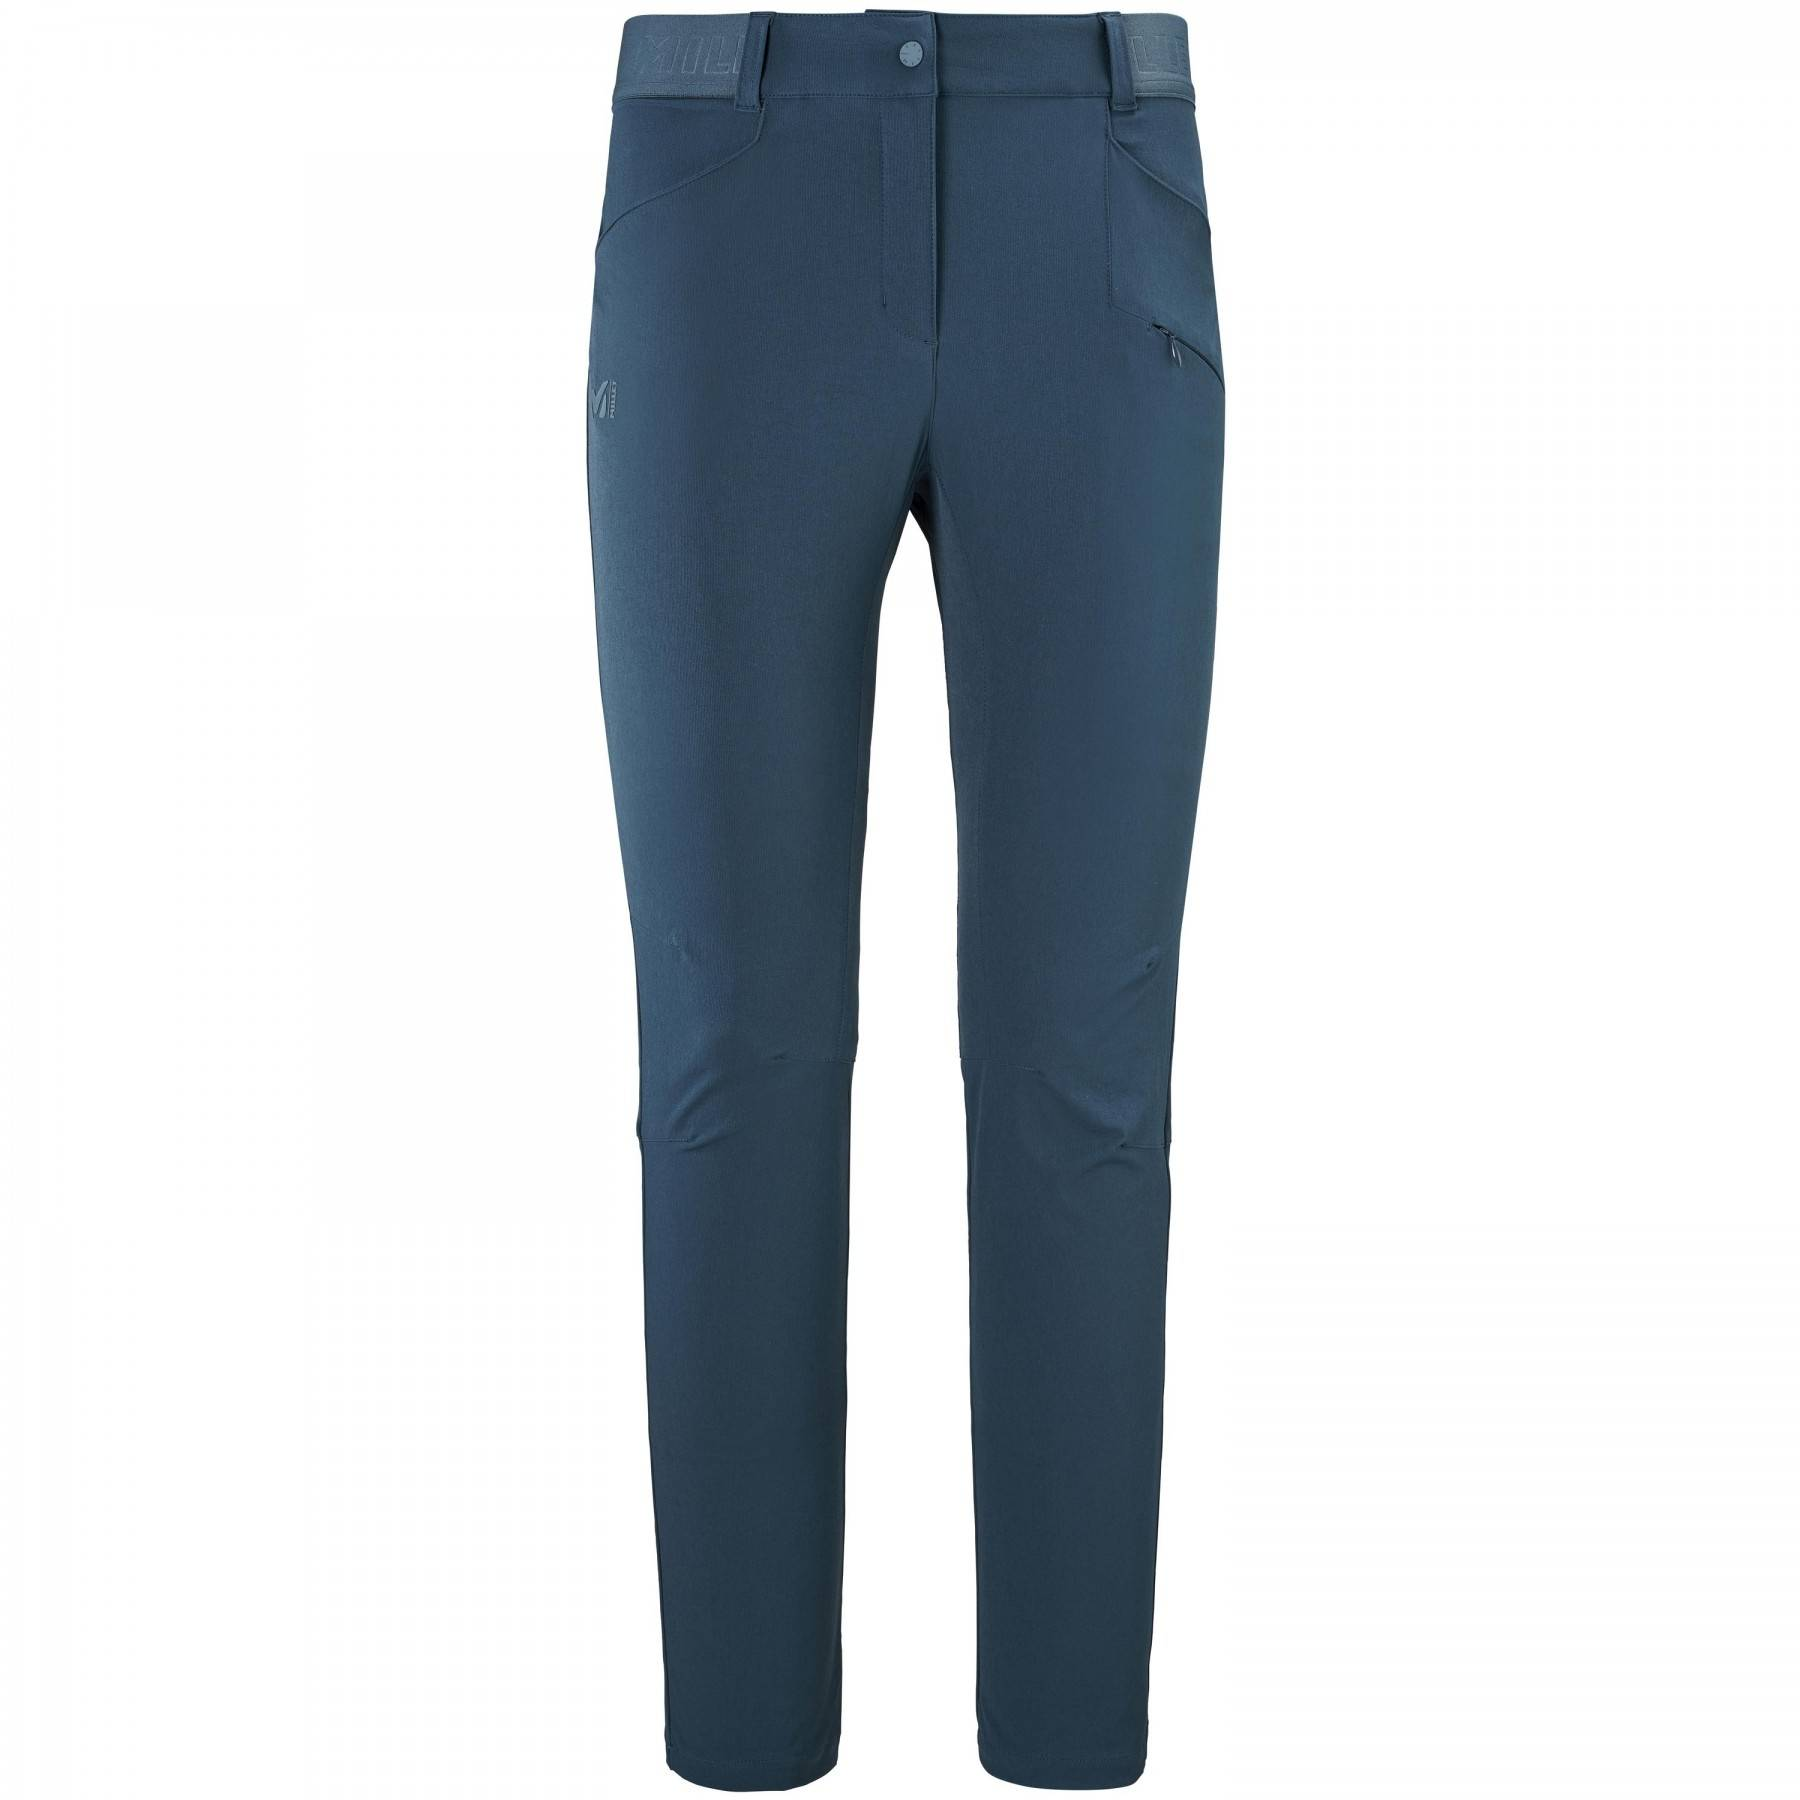 millet Pantalon Softshell Millet Wanaka Fall Stretch Orion Blue Femme